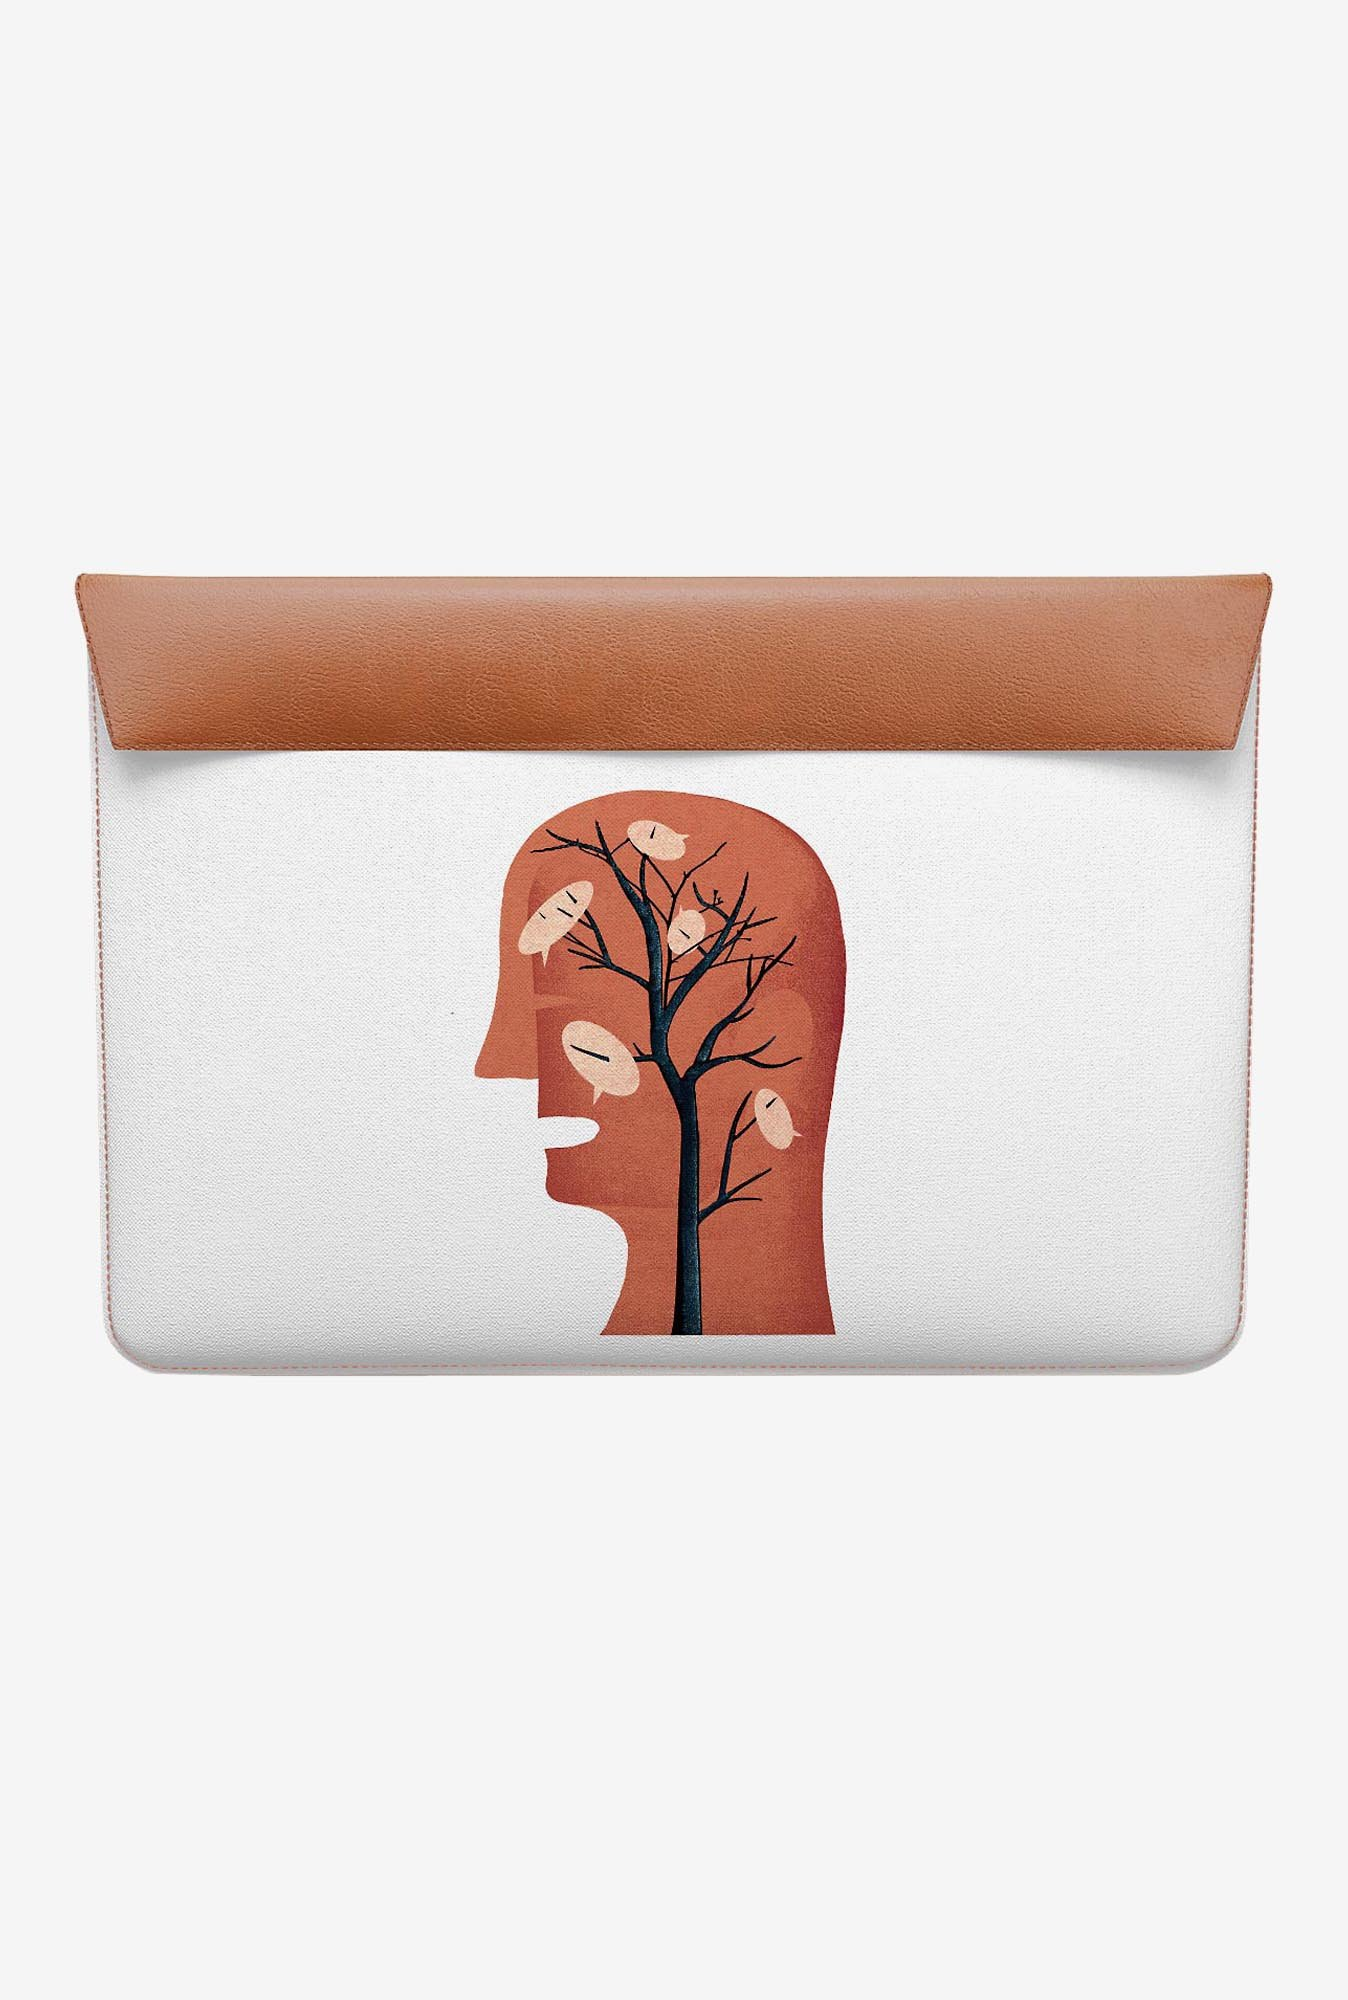 DailyObjects Unspoken Thought MacBook Pro 15 Envelope Sleeve